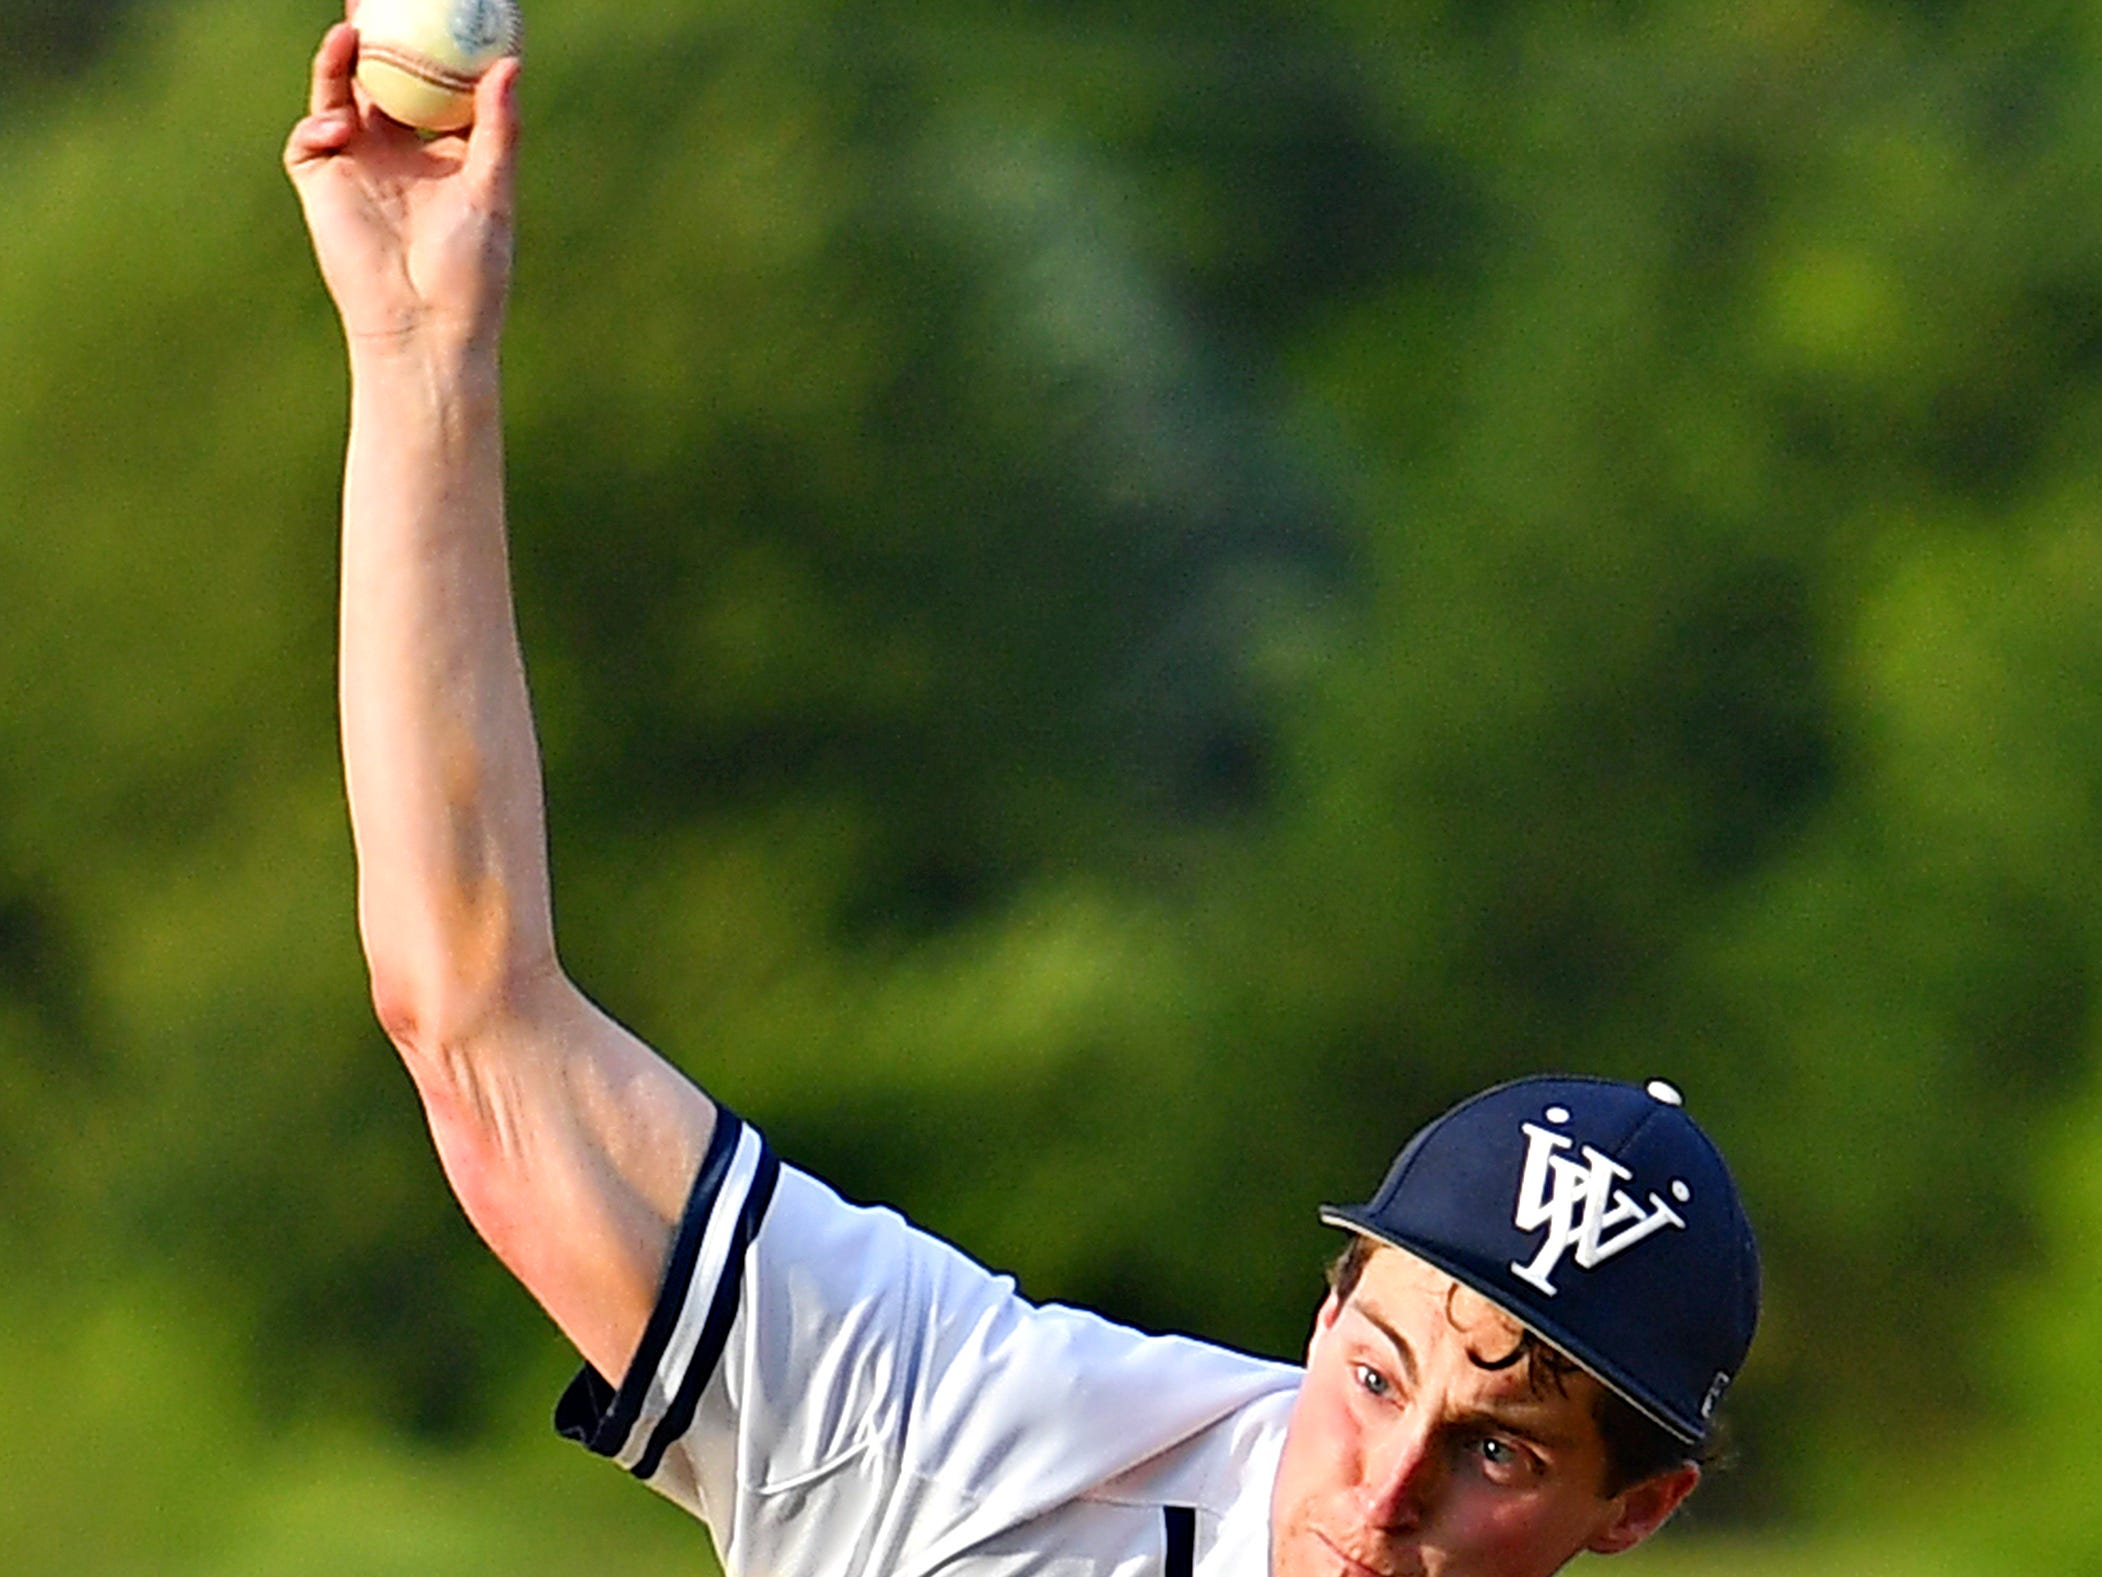 West York's Gabe Allen pitches against Dallastown during baseball semifinal action at Spring Grove Area High School in Jackson Township, Wednesday, May 15, 2019. Dallastown would win the game 12-0. Dawn J. Sagert photo